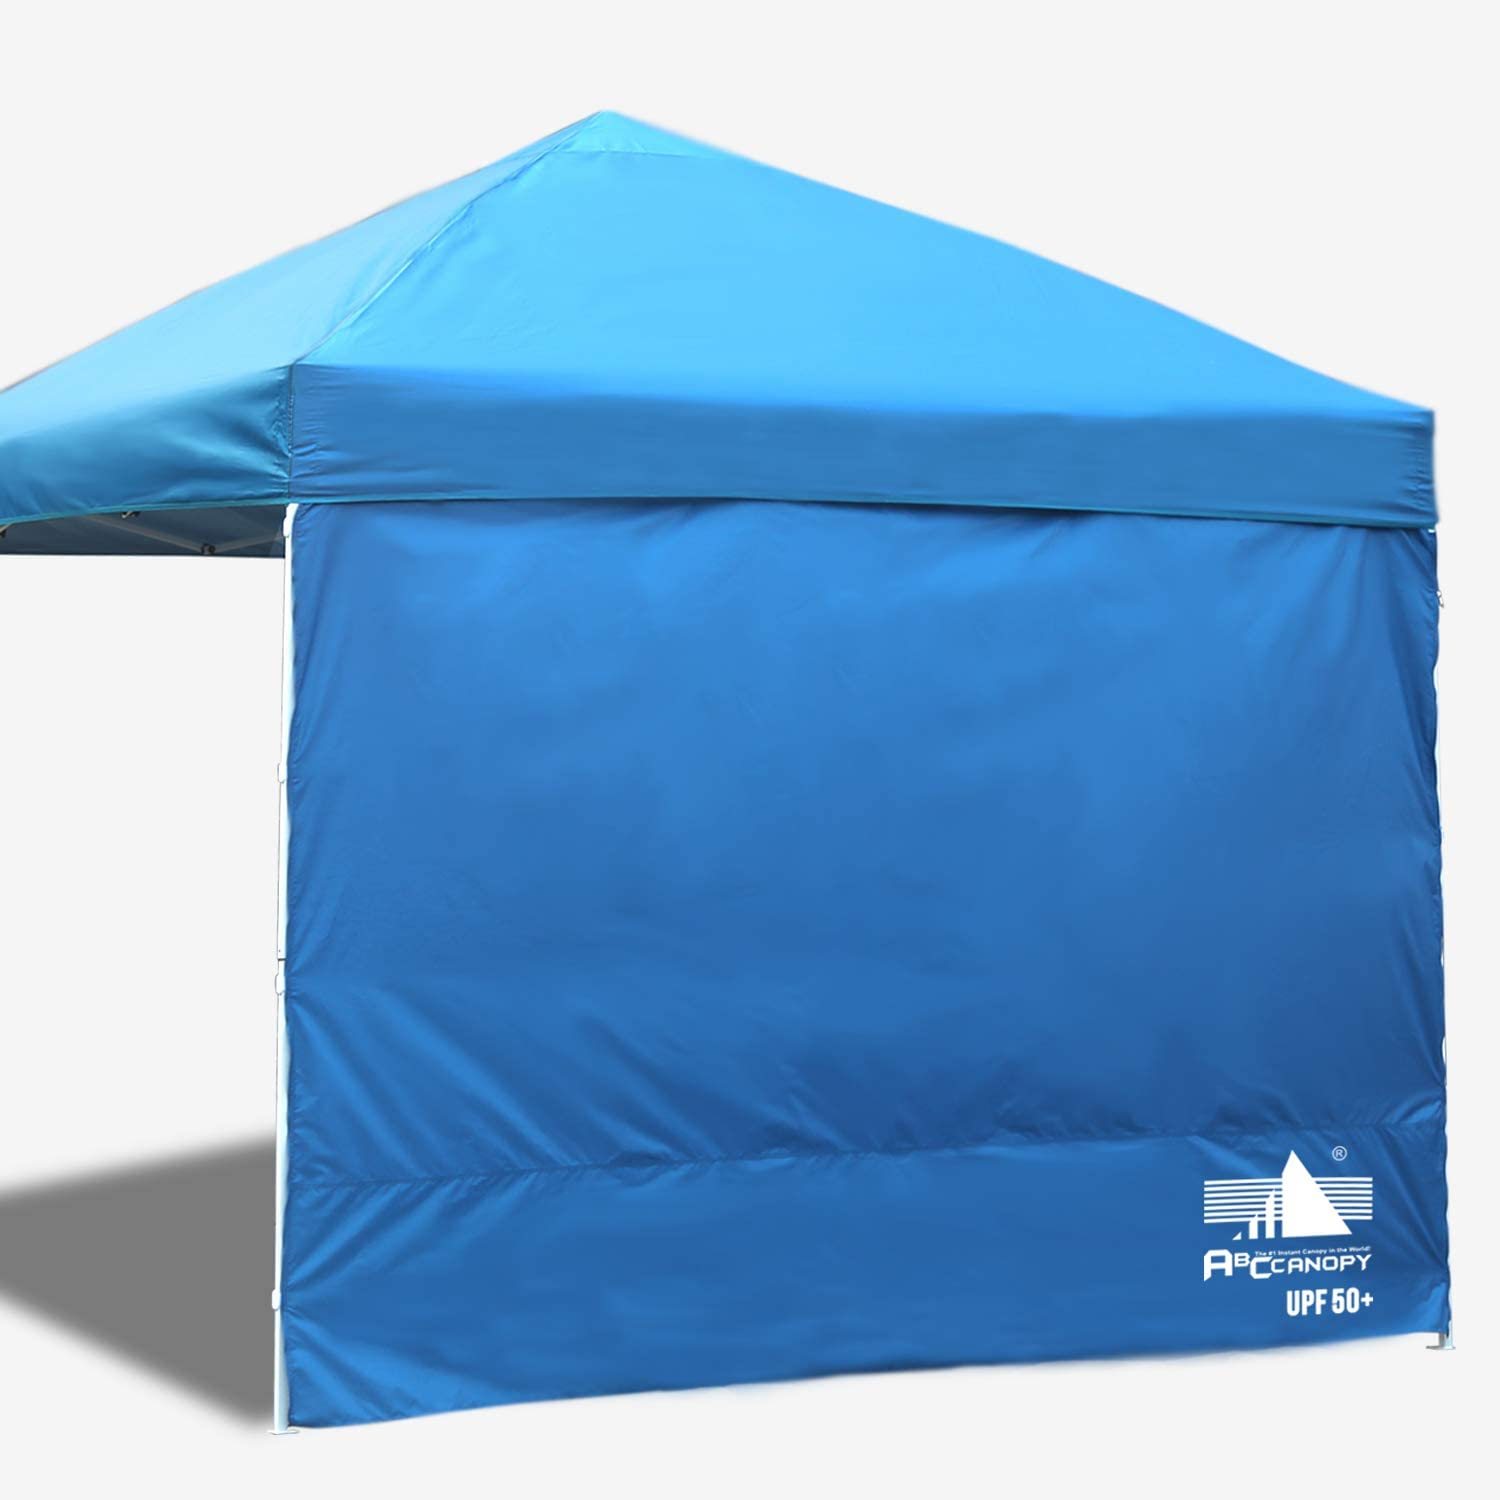 ABCCANOPY 15 Colors 10 Sun Wall for 10 x 10 Straight Leg pop up Canopy, 10 Sidewall kit 1 Panel with Truss Straps, Sunshield Wall Blue